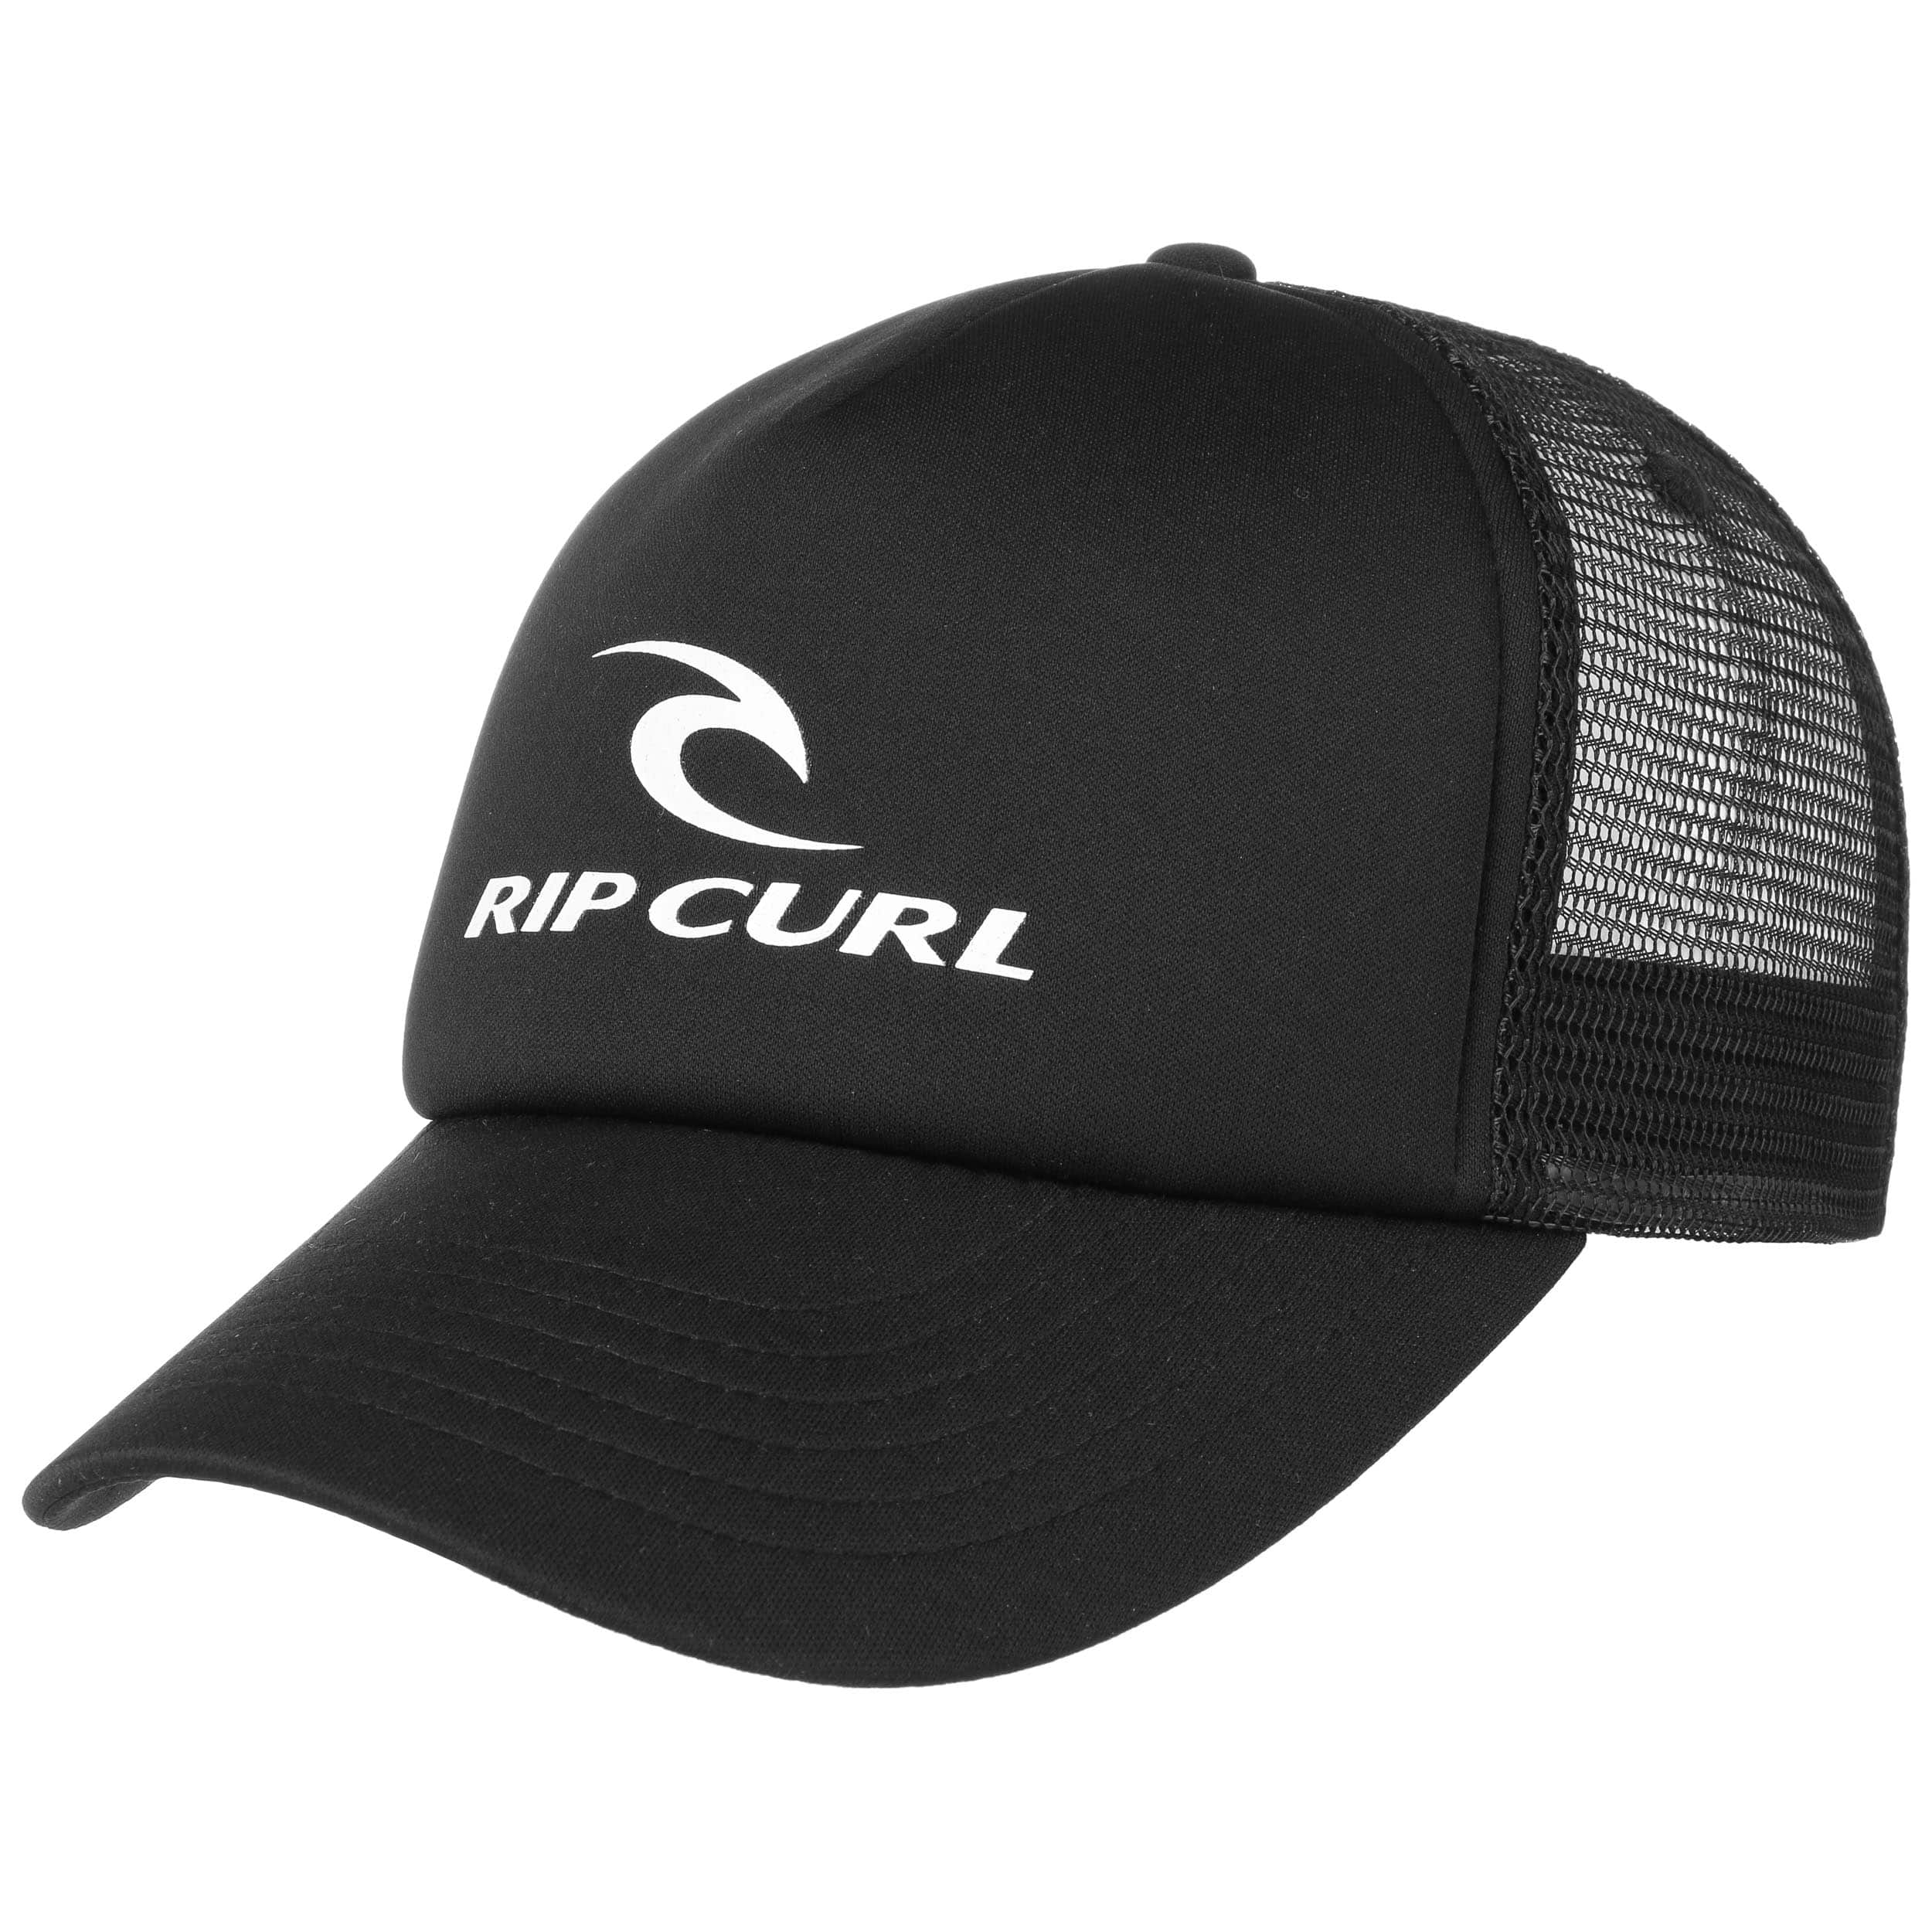 Gorra Trucker Corporate by Rip Curl - Gorras - sombreroshop.es 0ba04f5a4ec